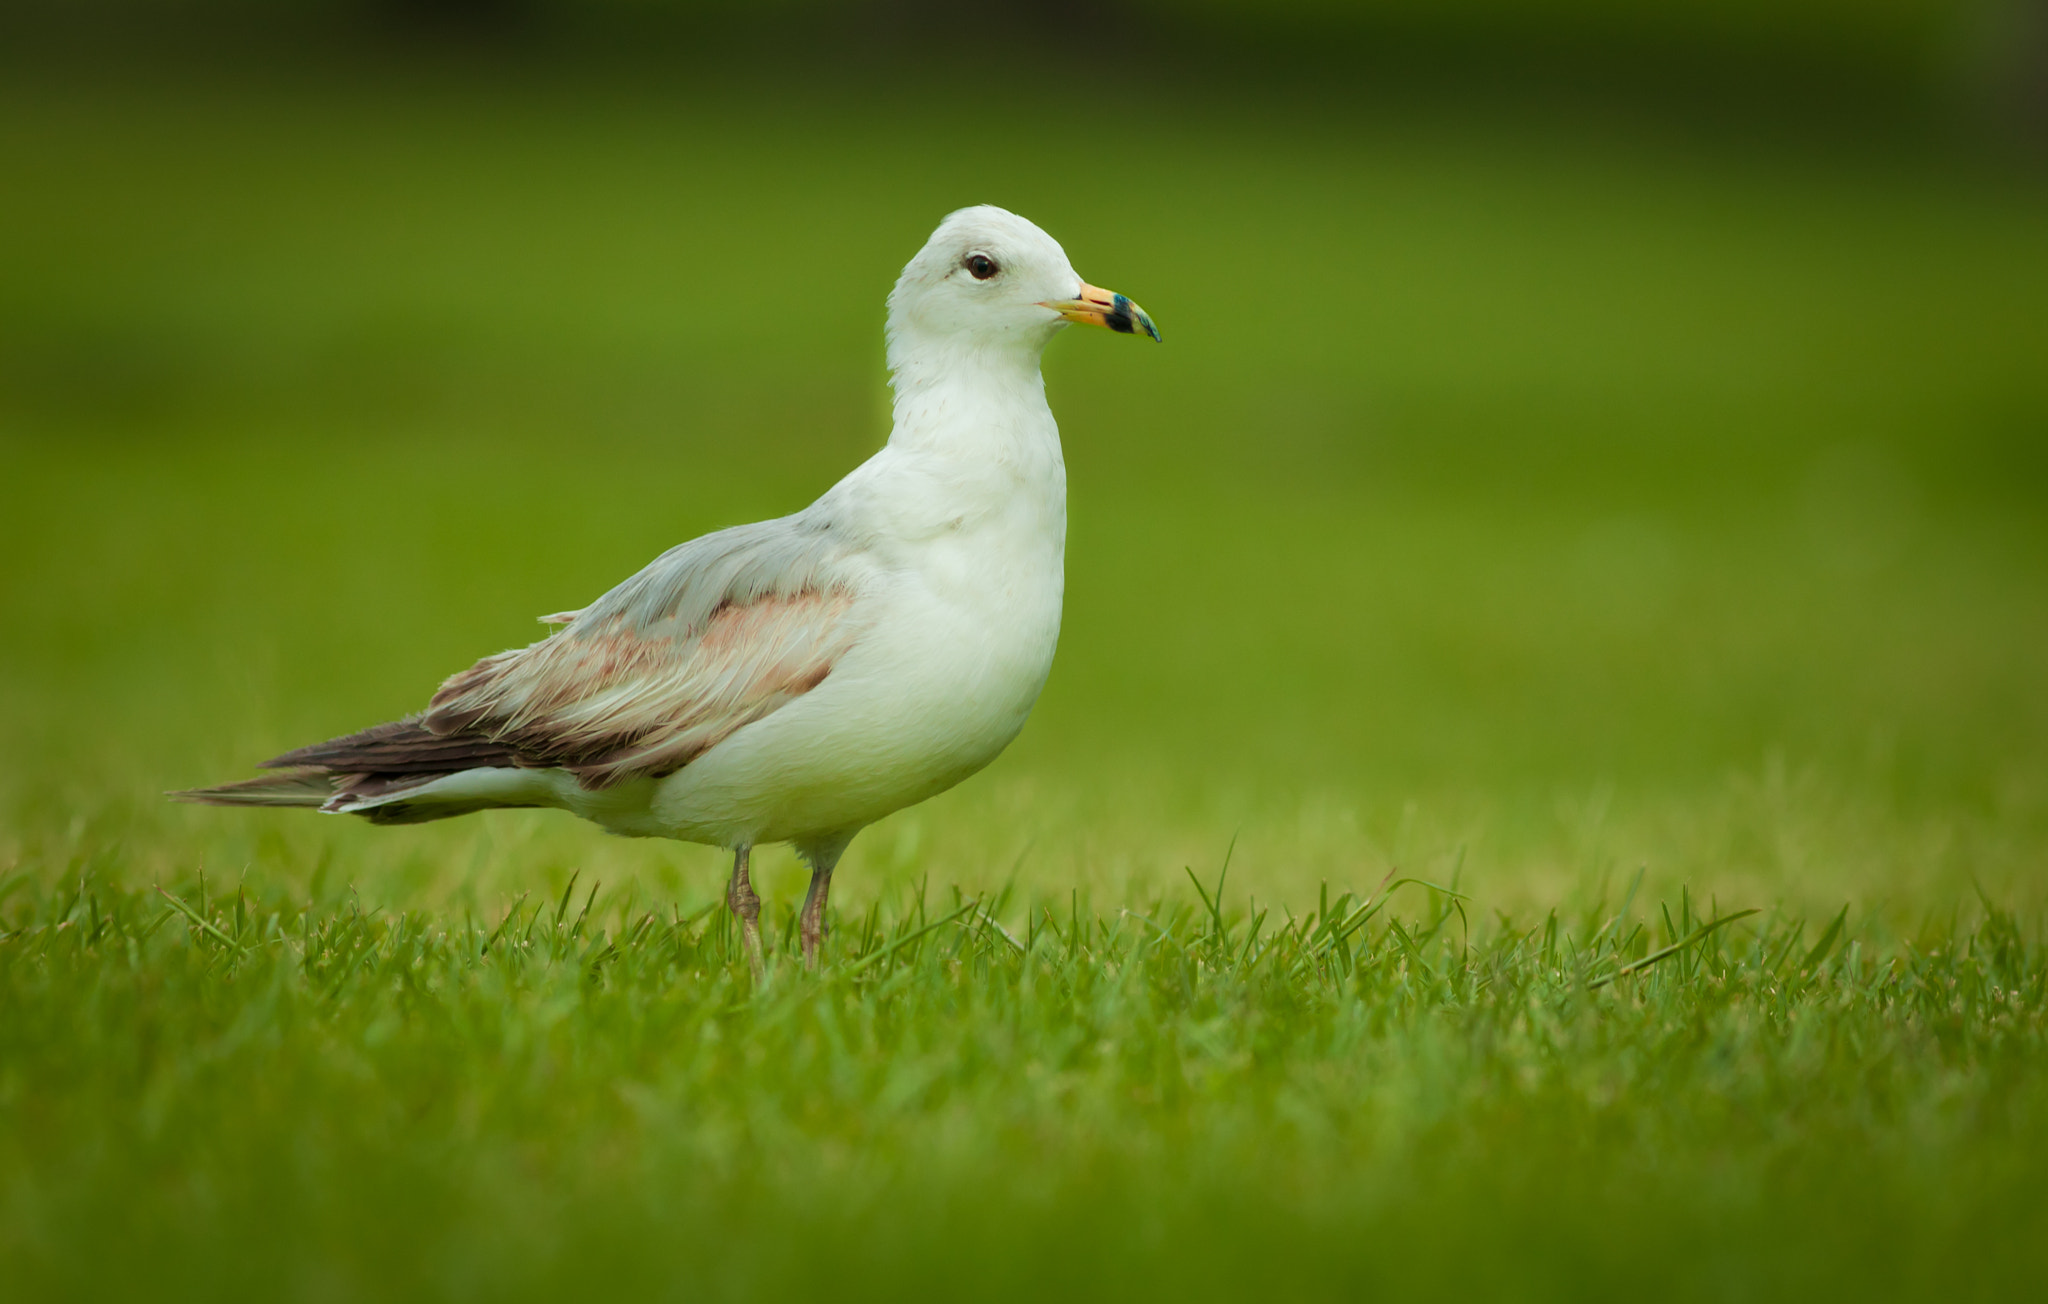 Photograph Seagull by Hani Alharthi on 500px